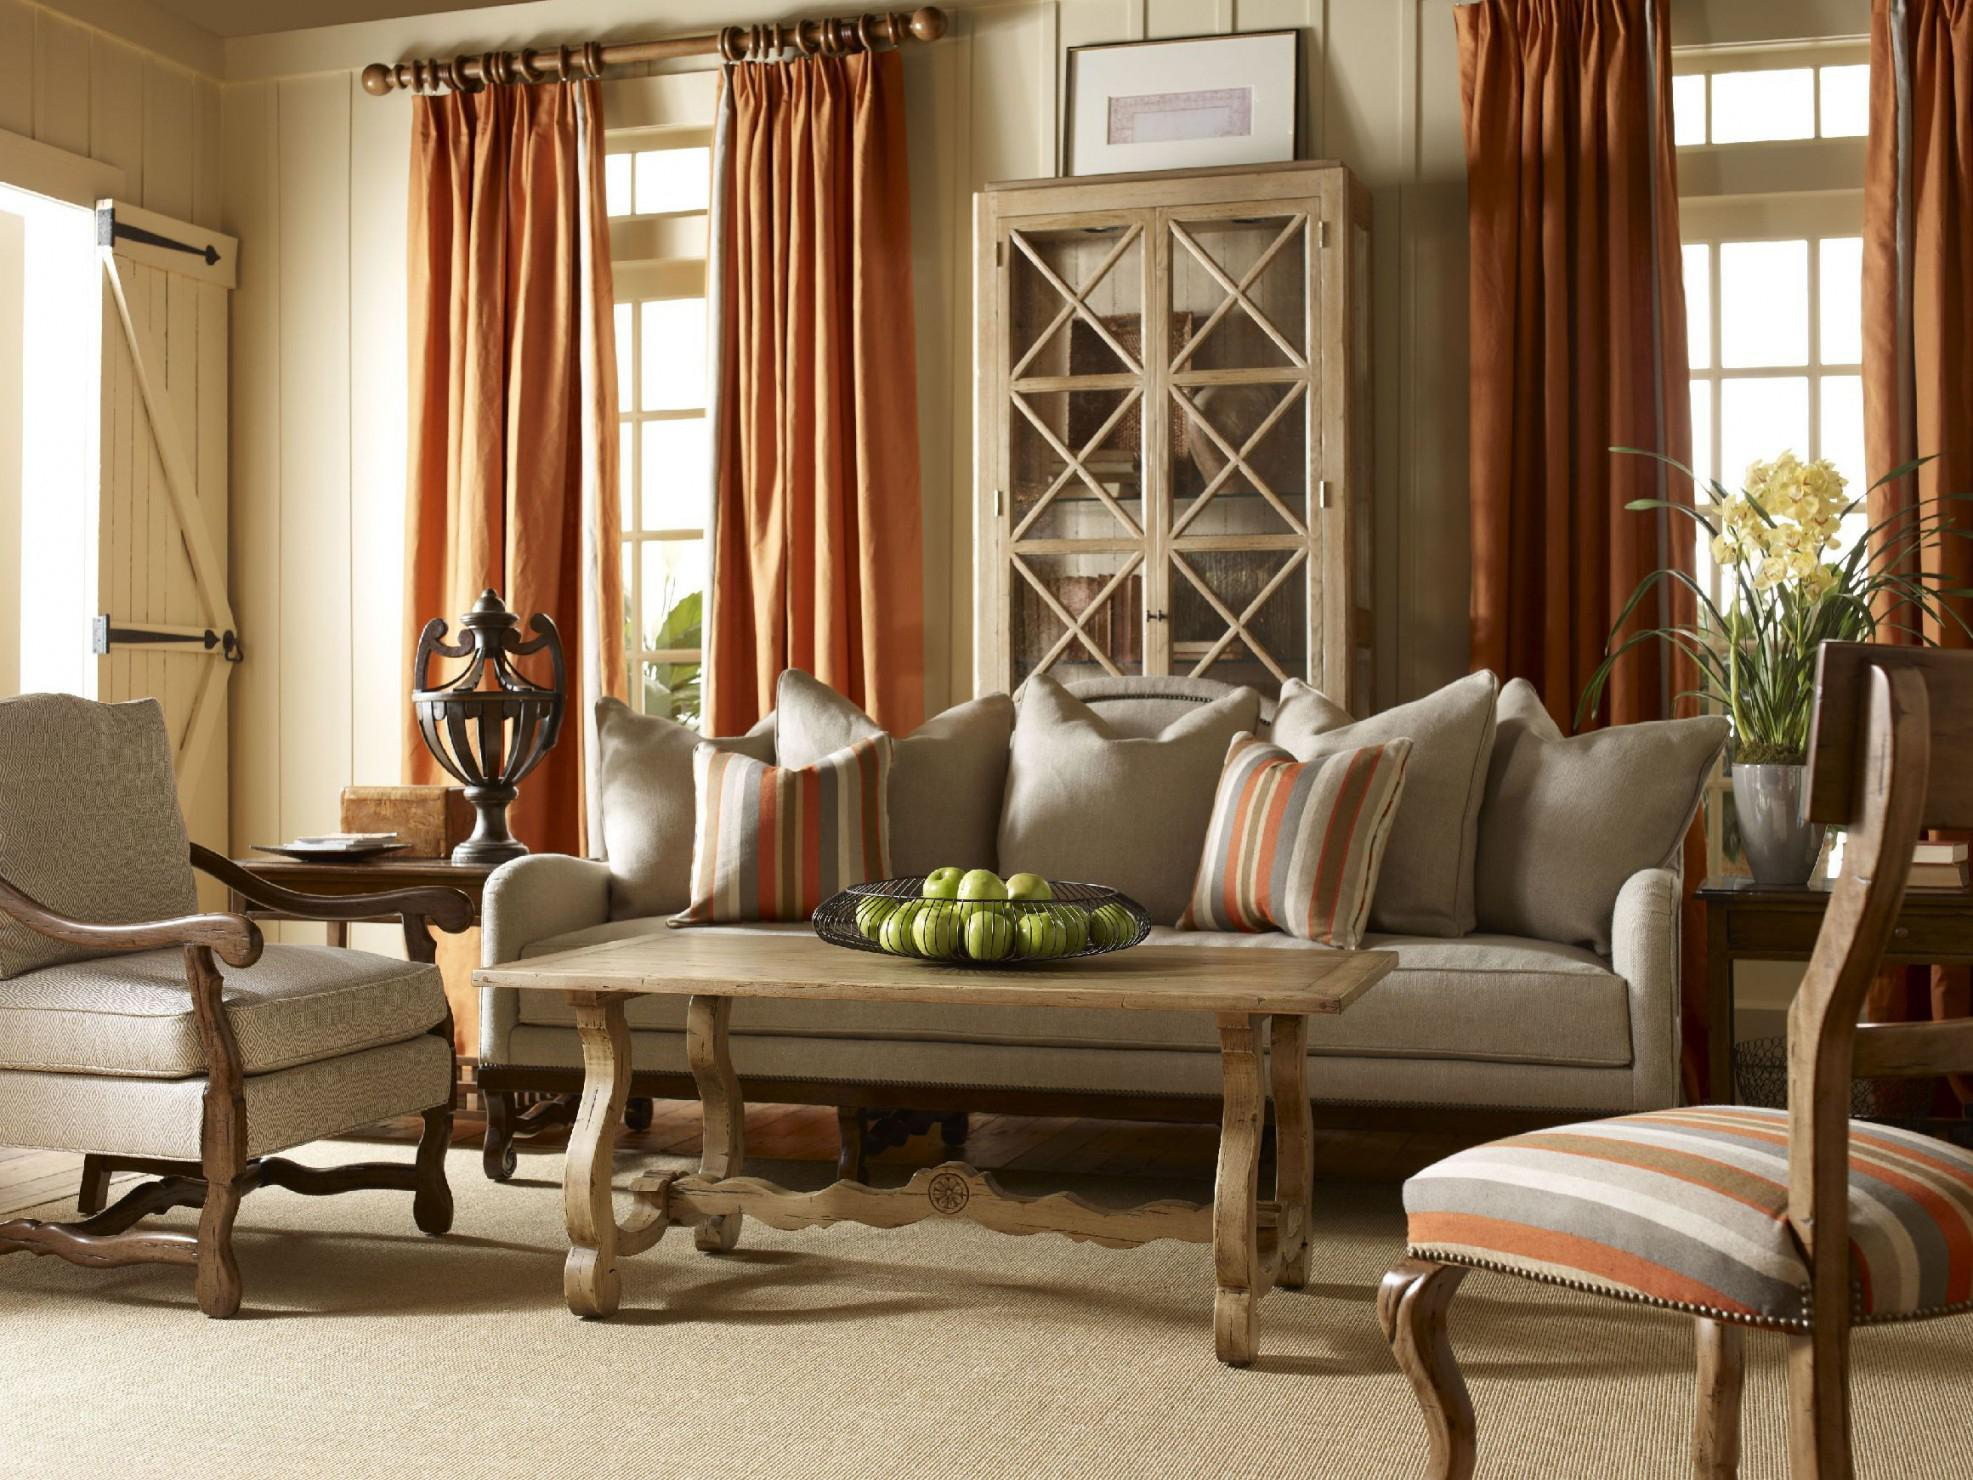 Image of: Country Home Interior Decorating Ideas